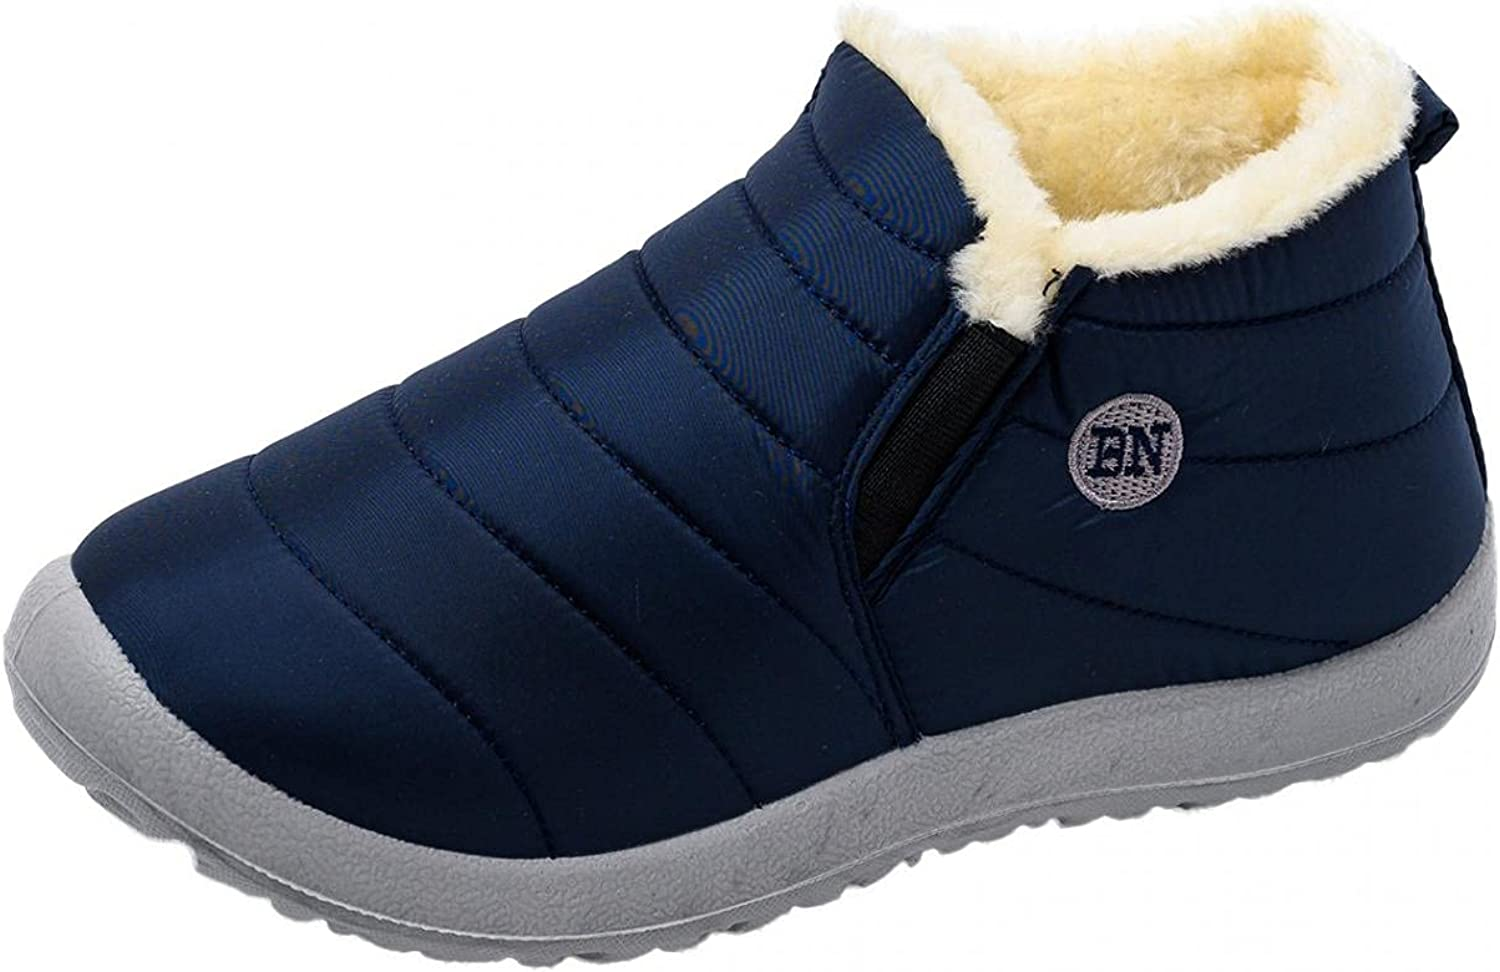 Gyouanime Shoes Womens Snow Boots Non-Slip Flat Plus Velvet Boot